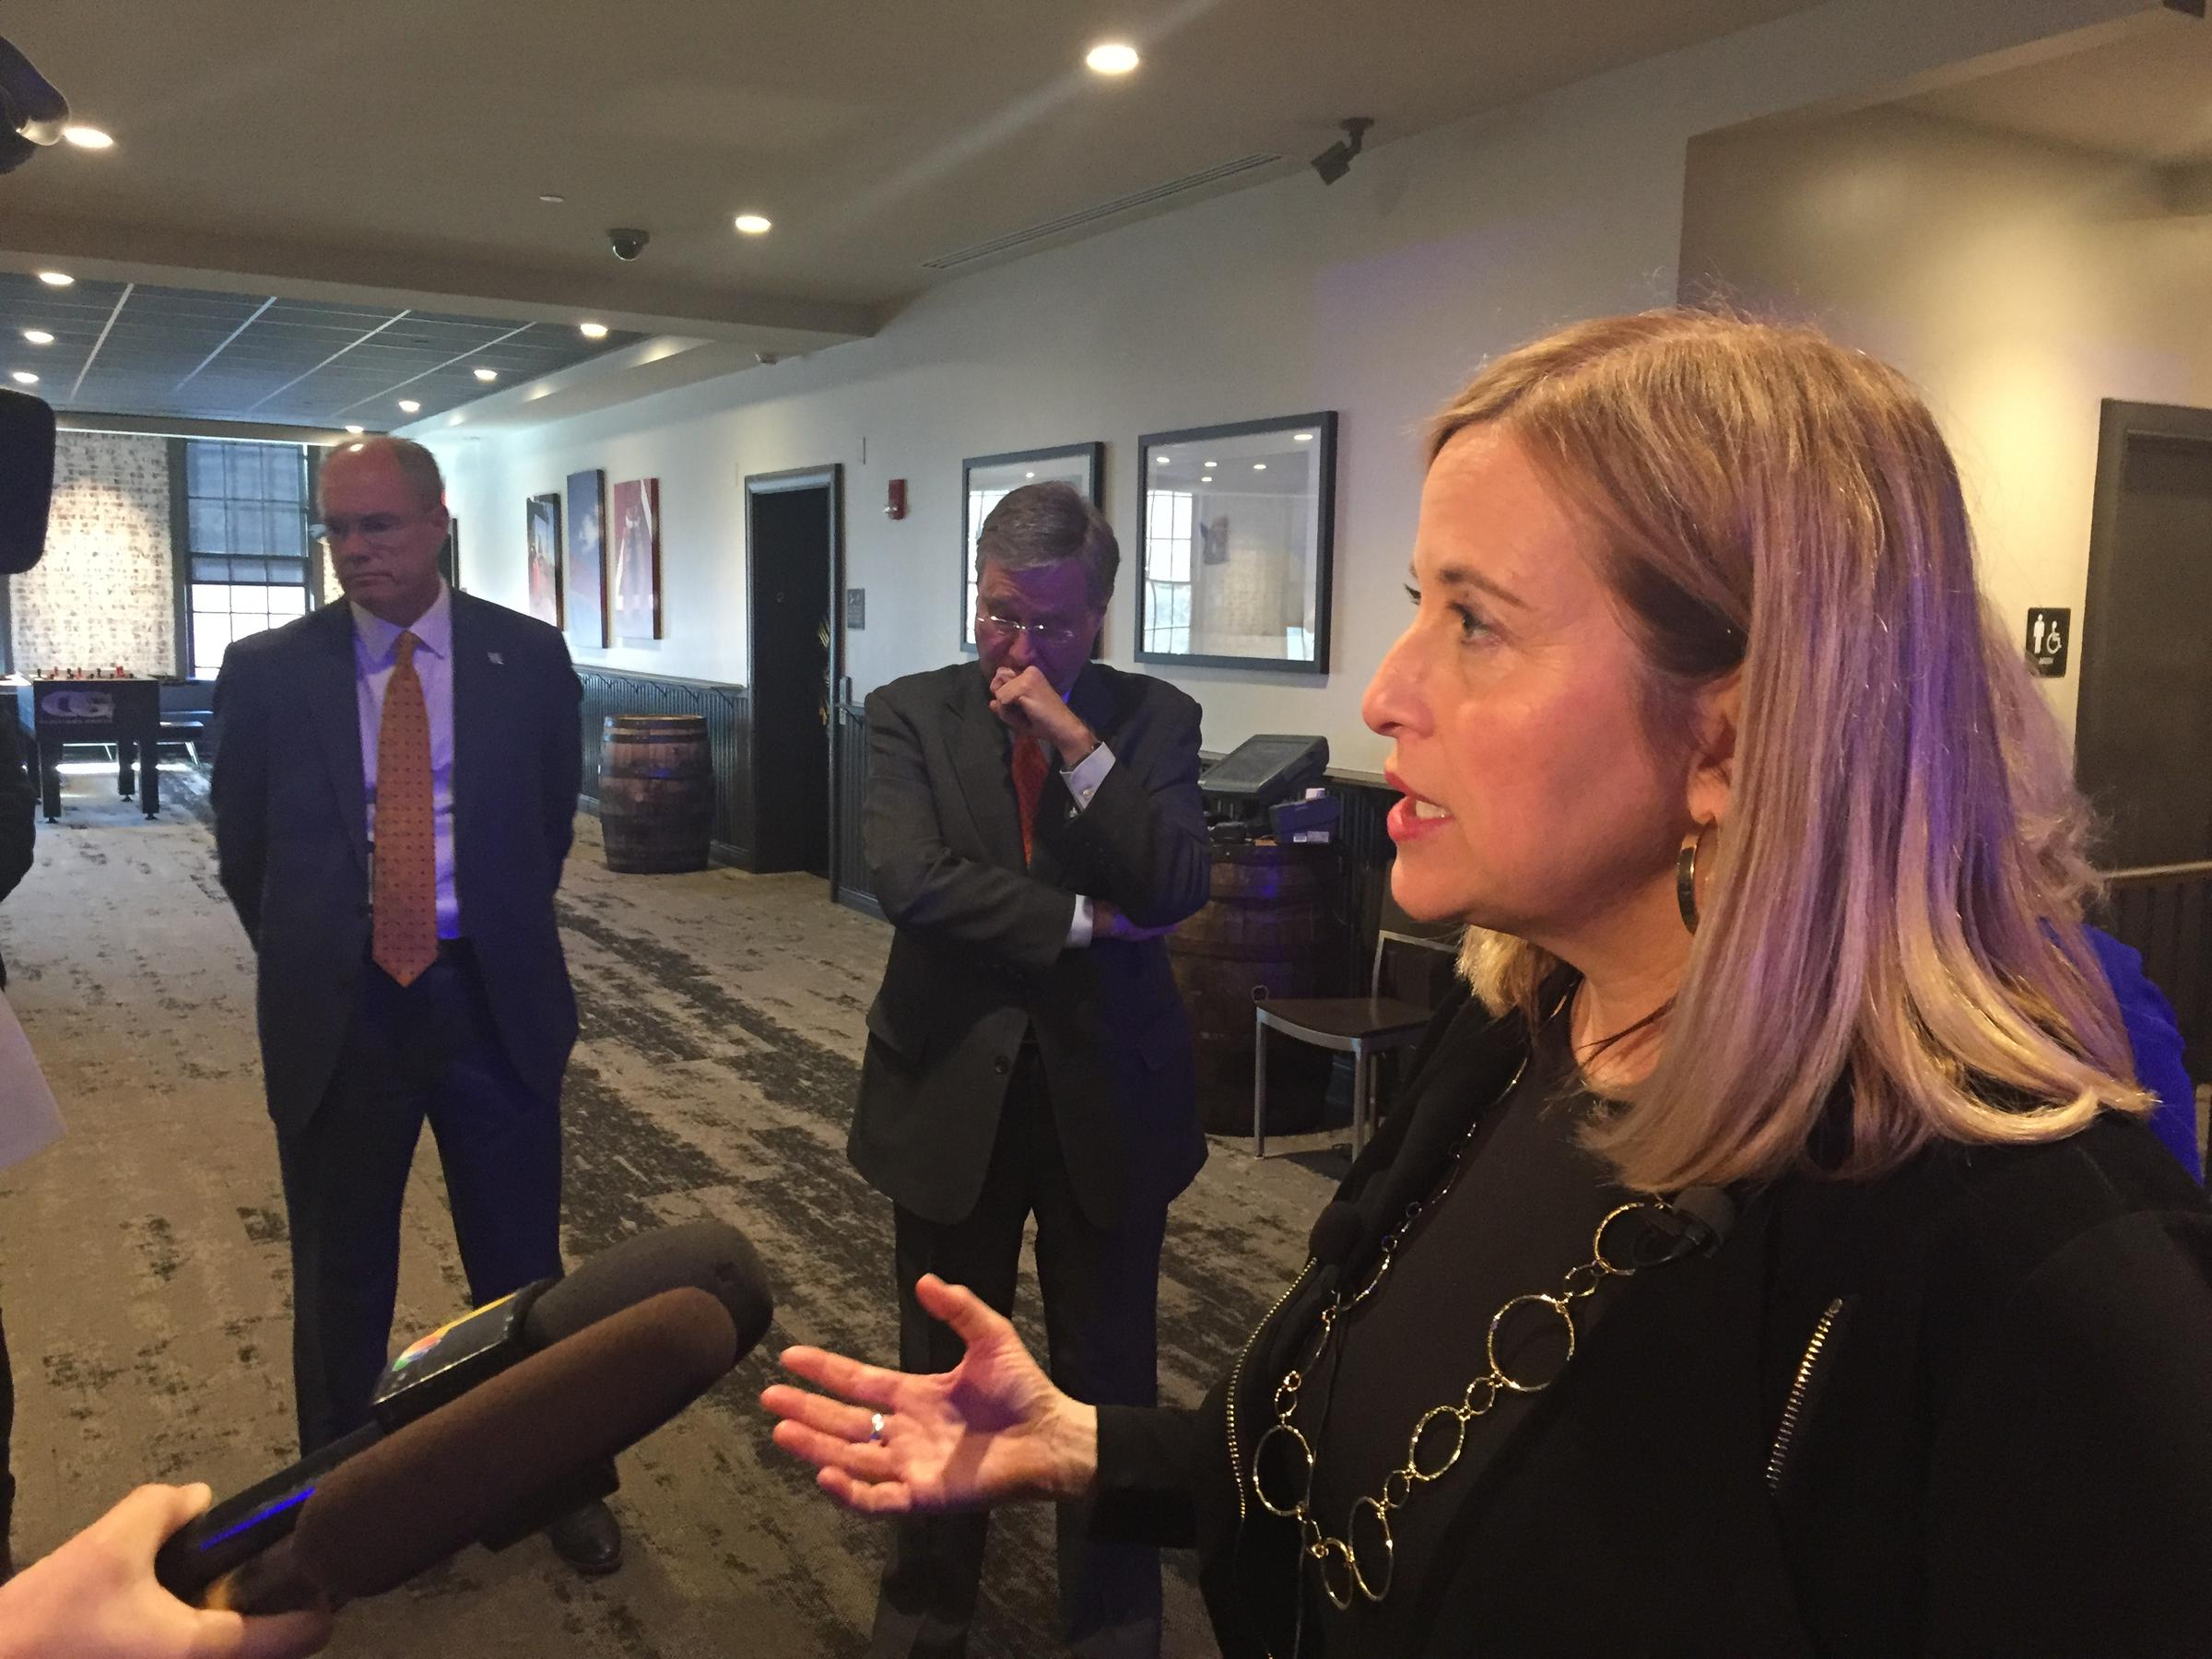 Nashville Democratic Mayor Admits to Affair With Head of Her Security Detail